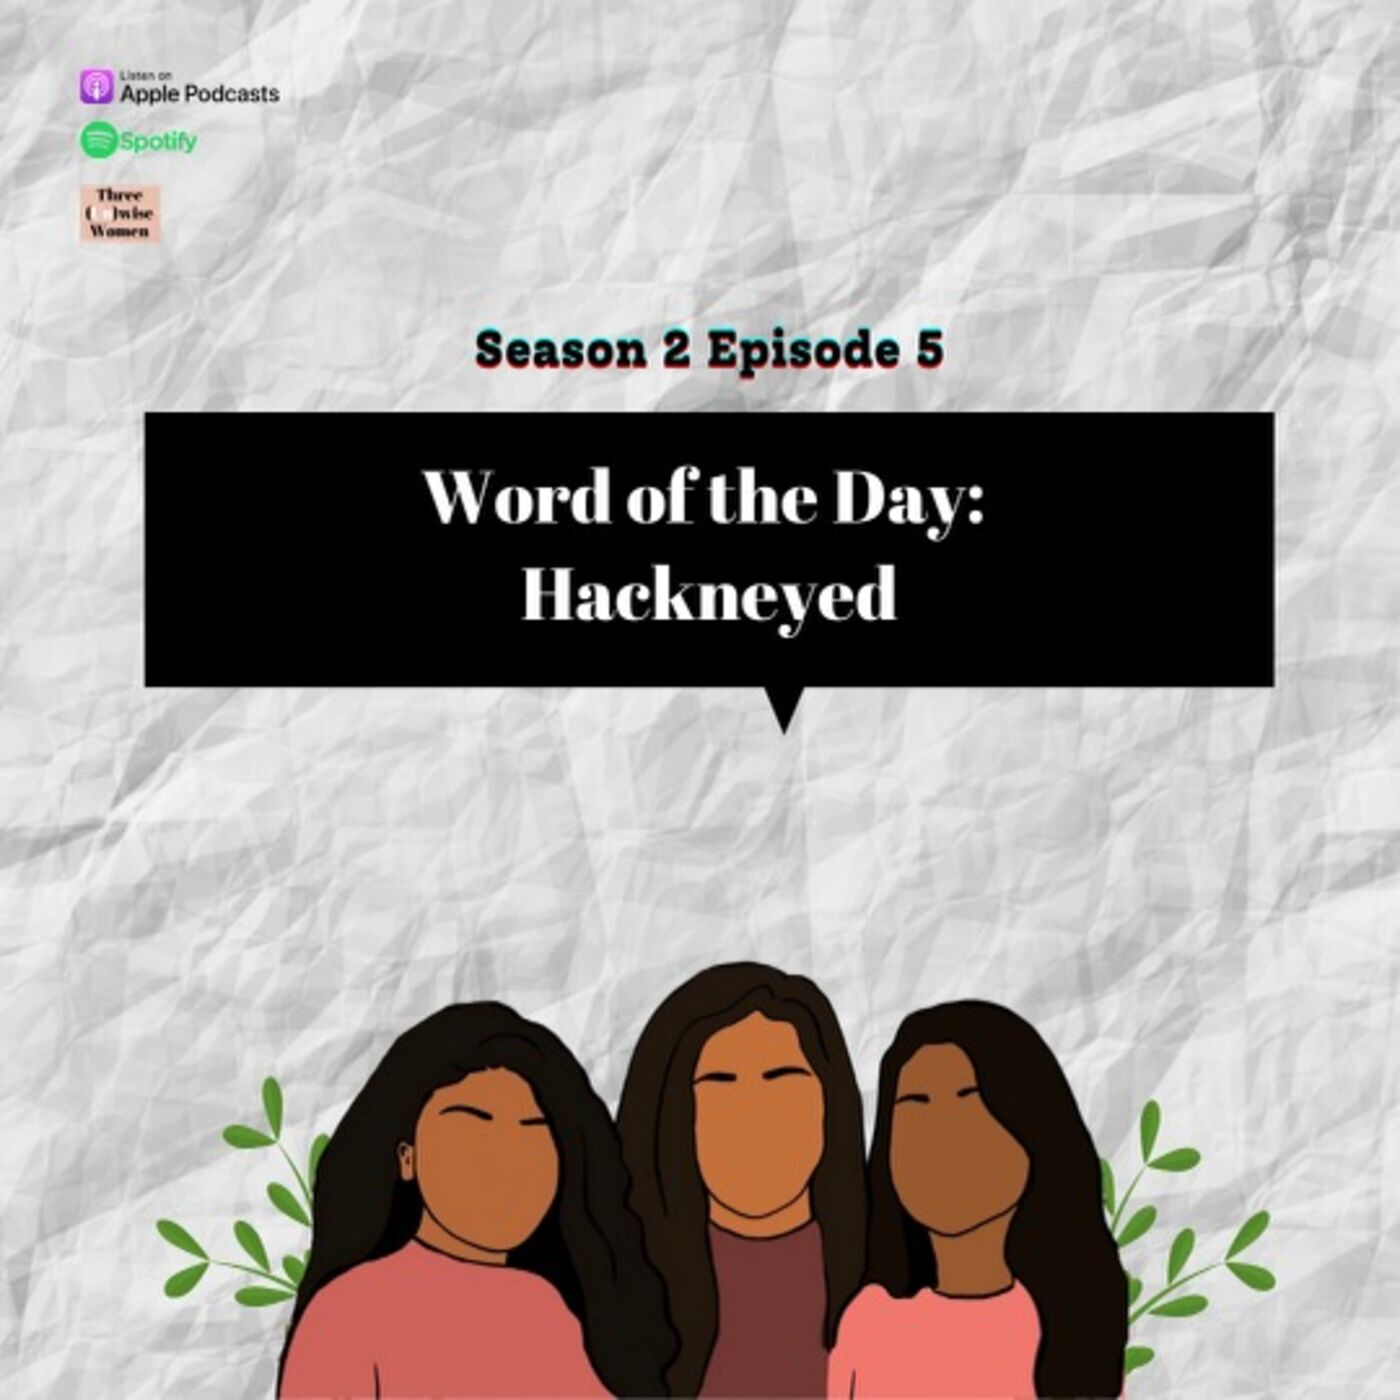 Word of the Day: Hackneyed